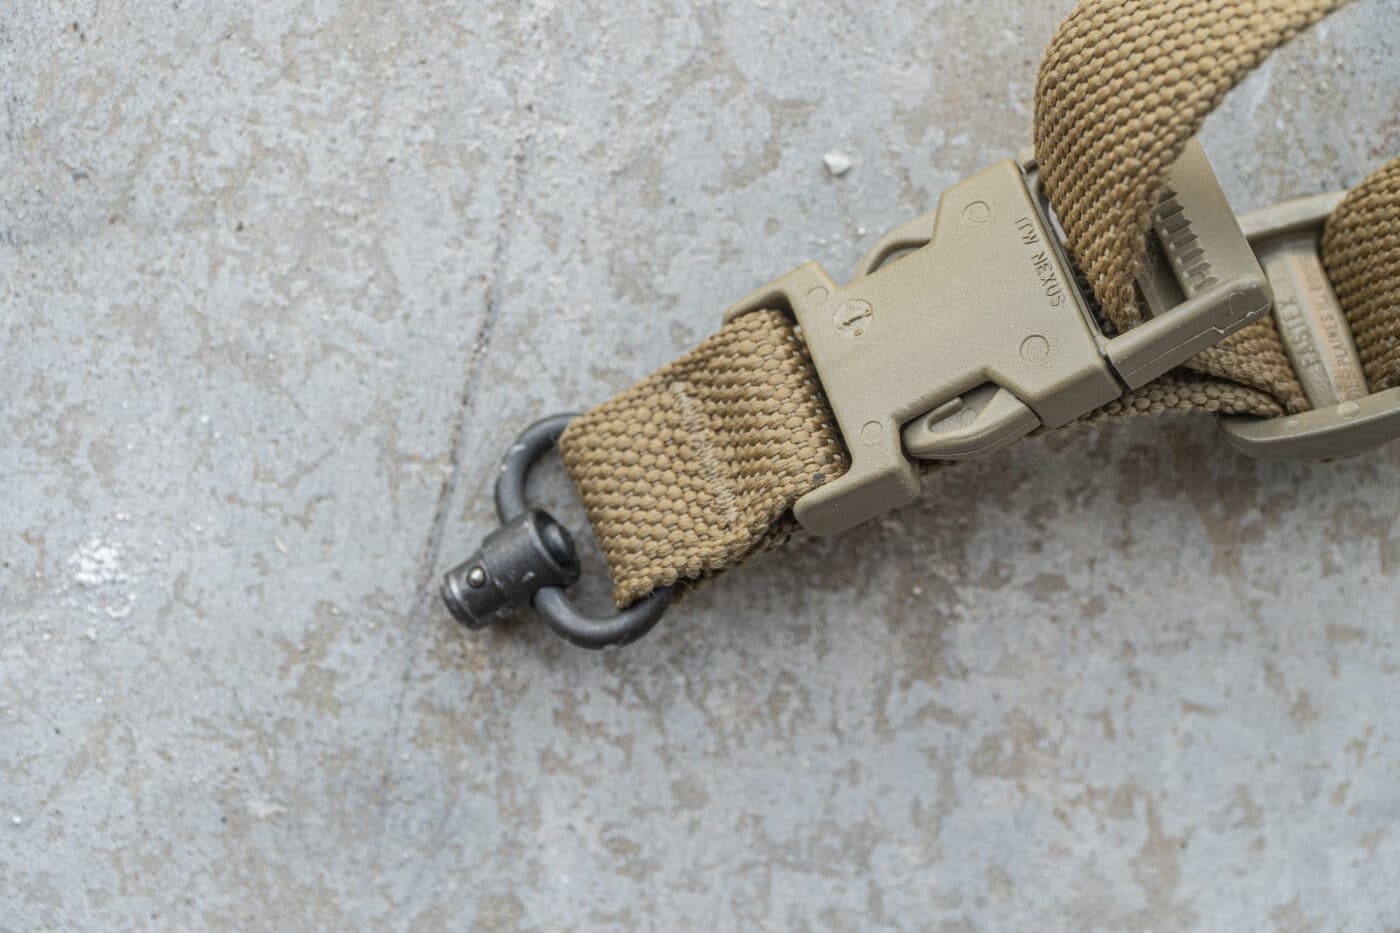 QD attachment for a single point sling